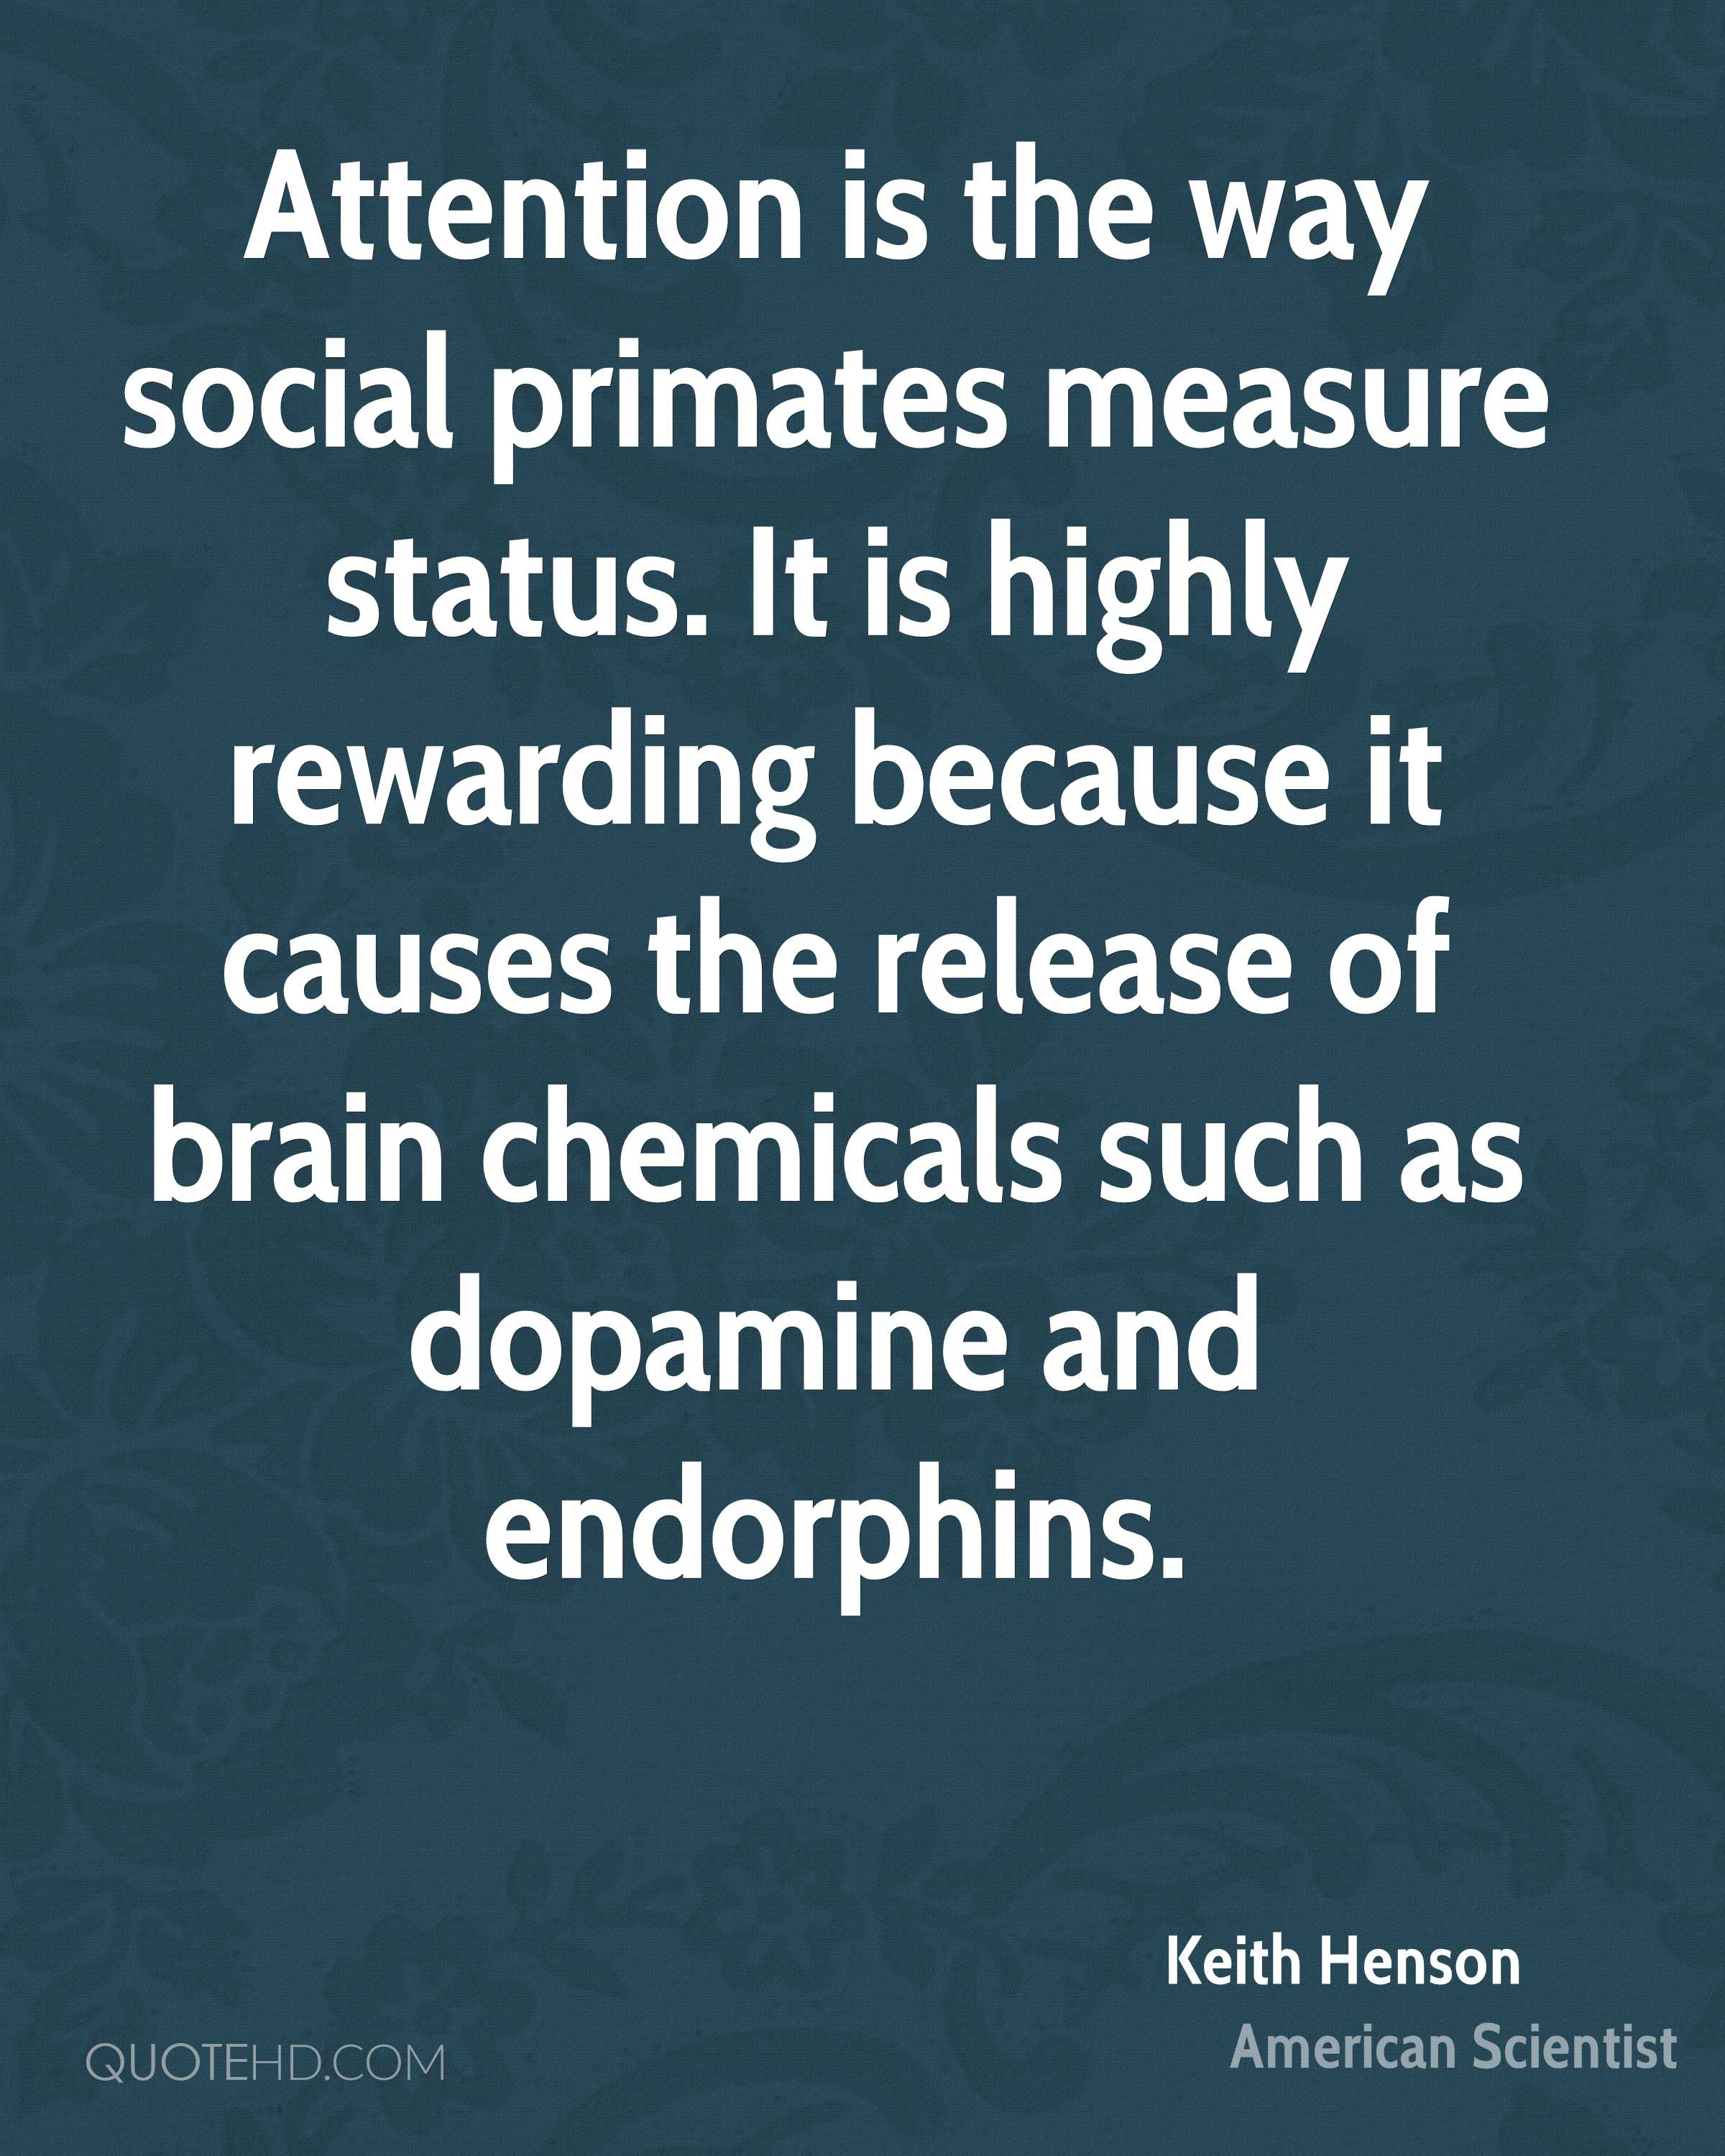 Attention is the way social primates measure status. It is highly rewarding because it causes the release of brain chemicals such as dopamine and endorphins.